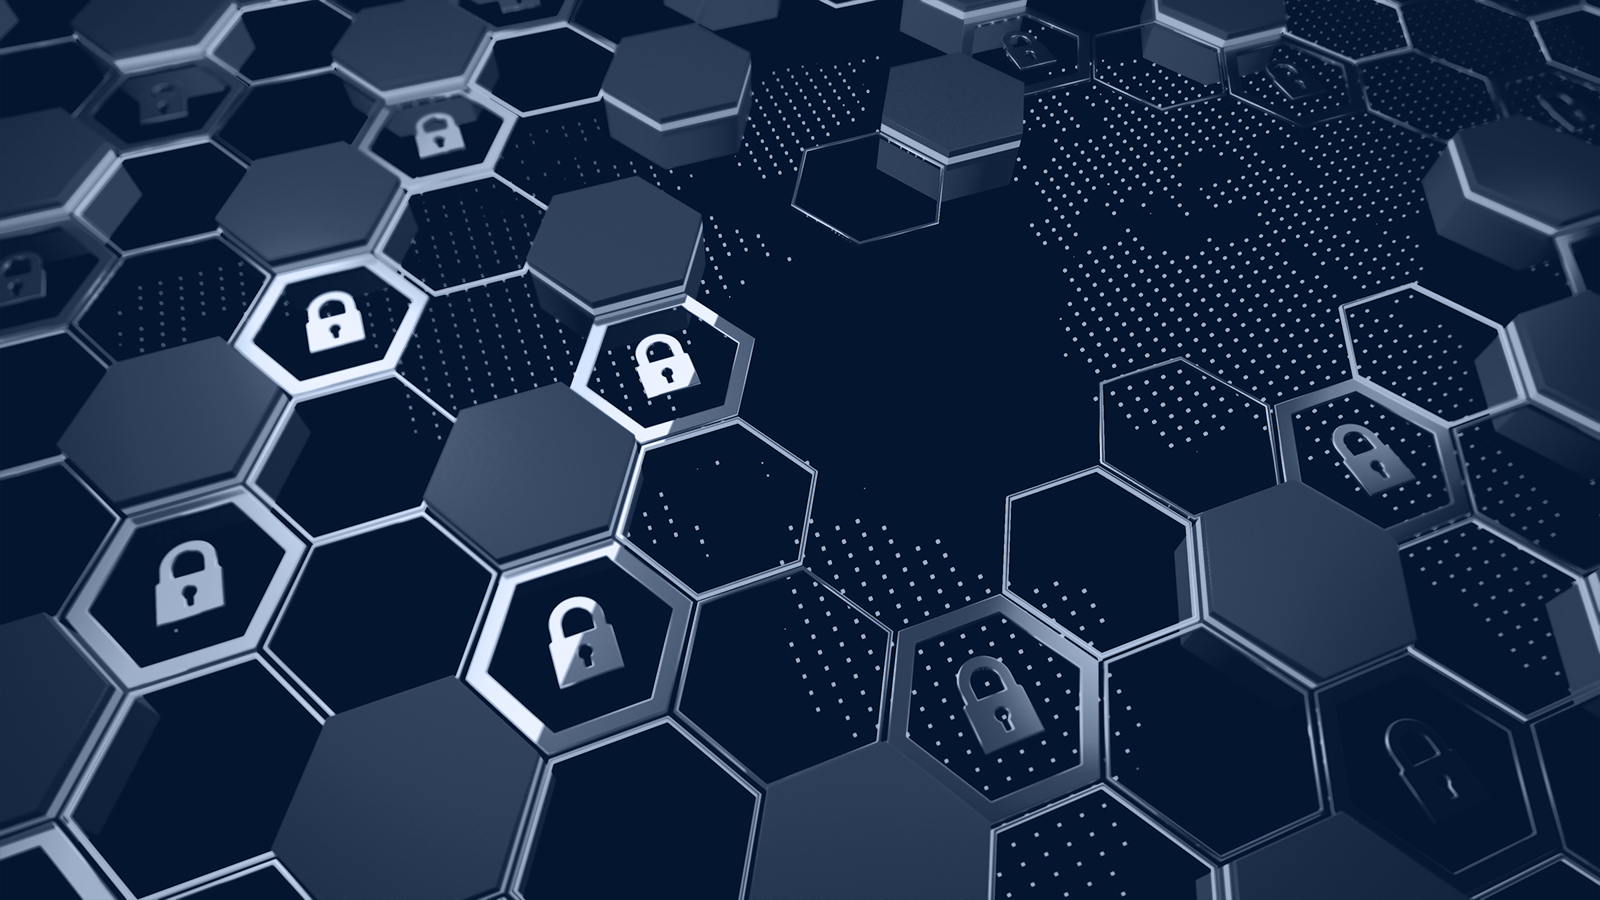 How to Secure Systems with Fine-Grained Compartmentalization